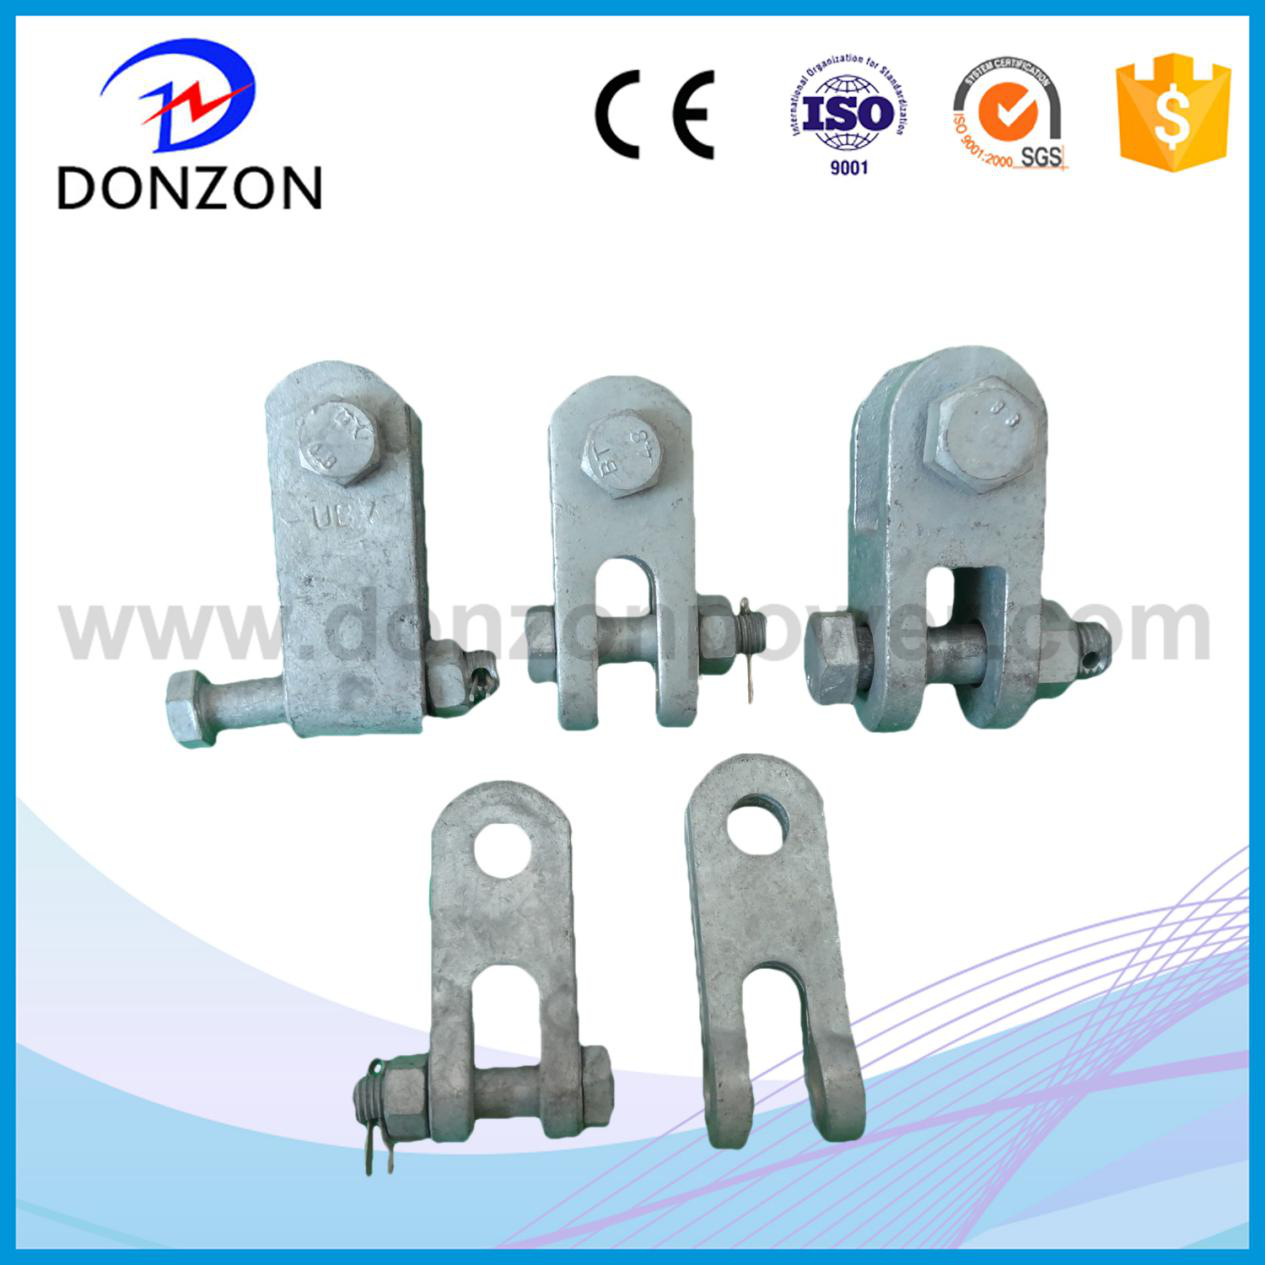 Transmission power fittings